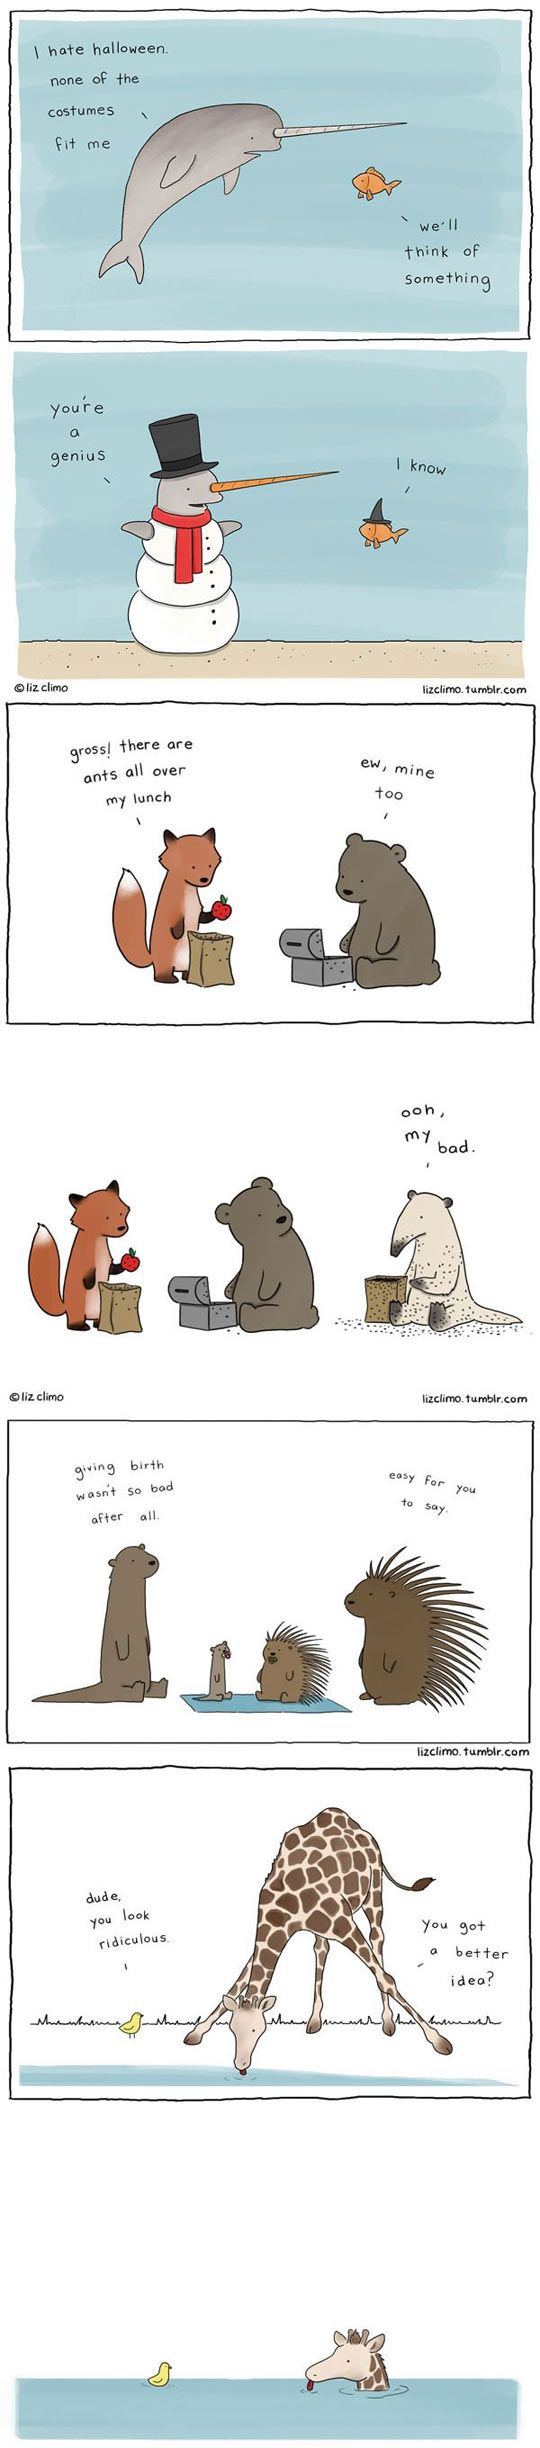 Animal Antics By Liz Climo.